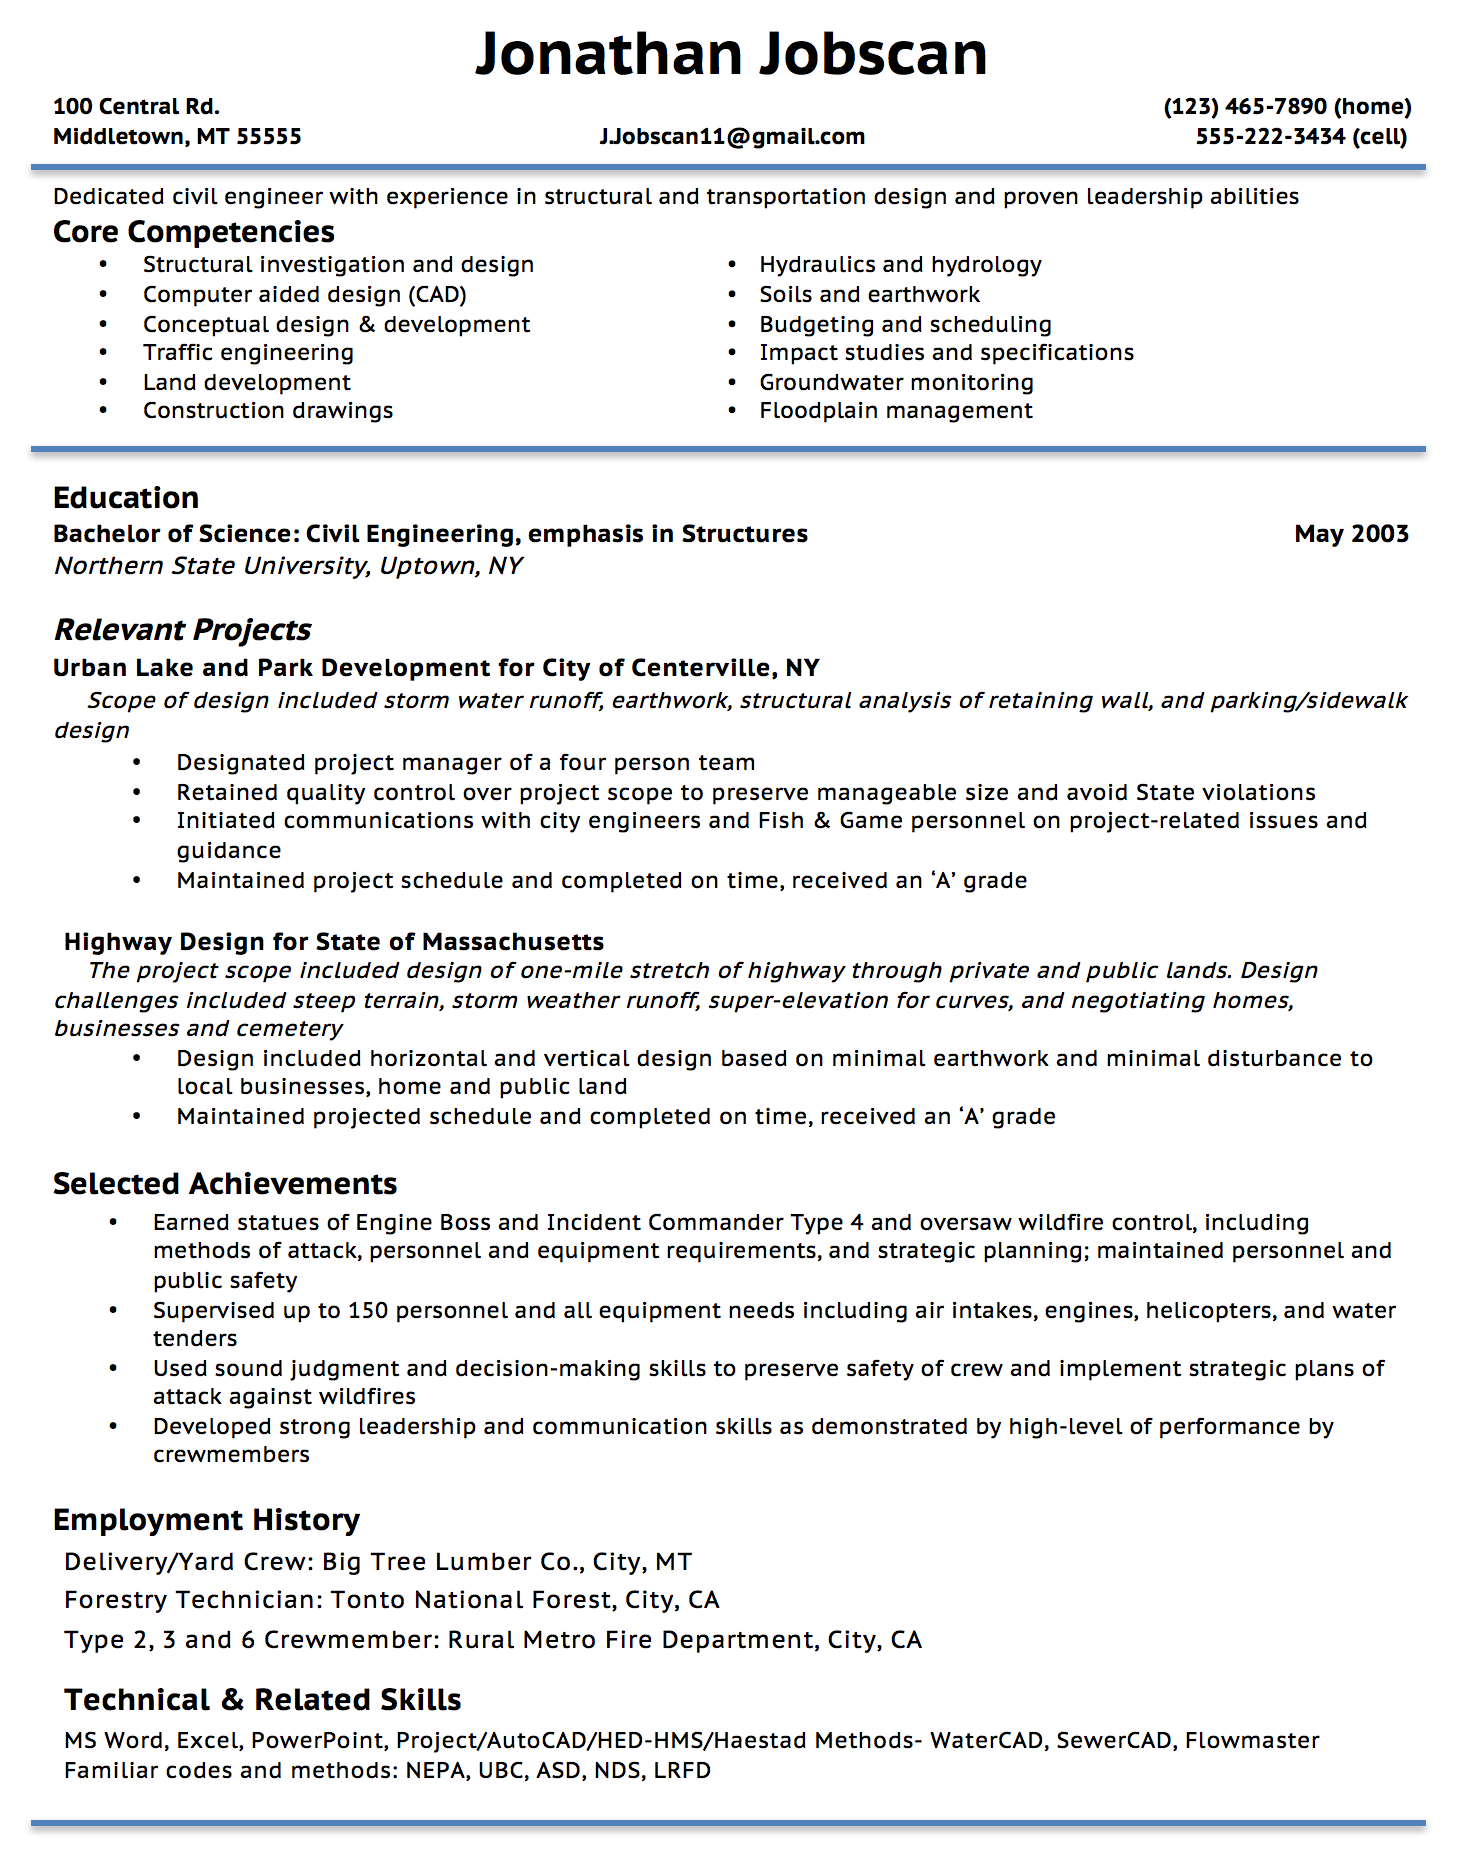 Opposenewapstandardsus  Sweet Resume Writing Guide  Jobscan With Luxury Example Of A Functional Resume Format With Beautiful Basic Resume Samples Also Best Resume Ever In Addition Acting Resume Format And Resume Builer As Well As Walmart Resume Paper Additionally What Is Resume Paper From Jobscanco With Opposenewapstandardsus  Luxury Resume Writing Guide  Jobscan With Beautiful Example Of A Functional Resume Format And Sweet Basic Resume Samples Also Best Resume Ever In Addition Acting Resume Format From Jobscanco